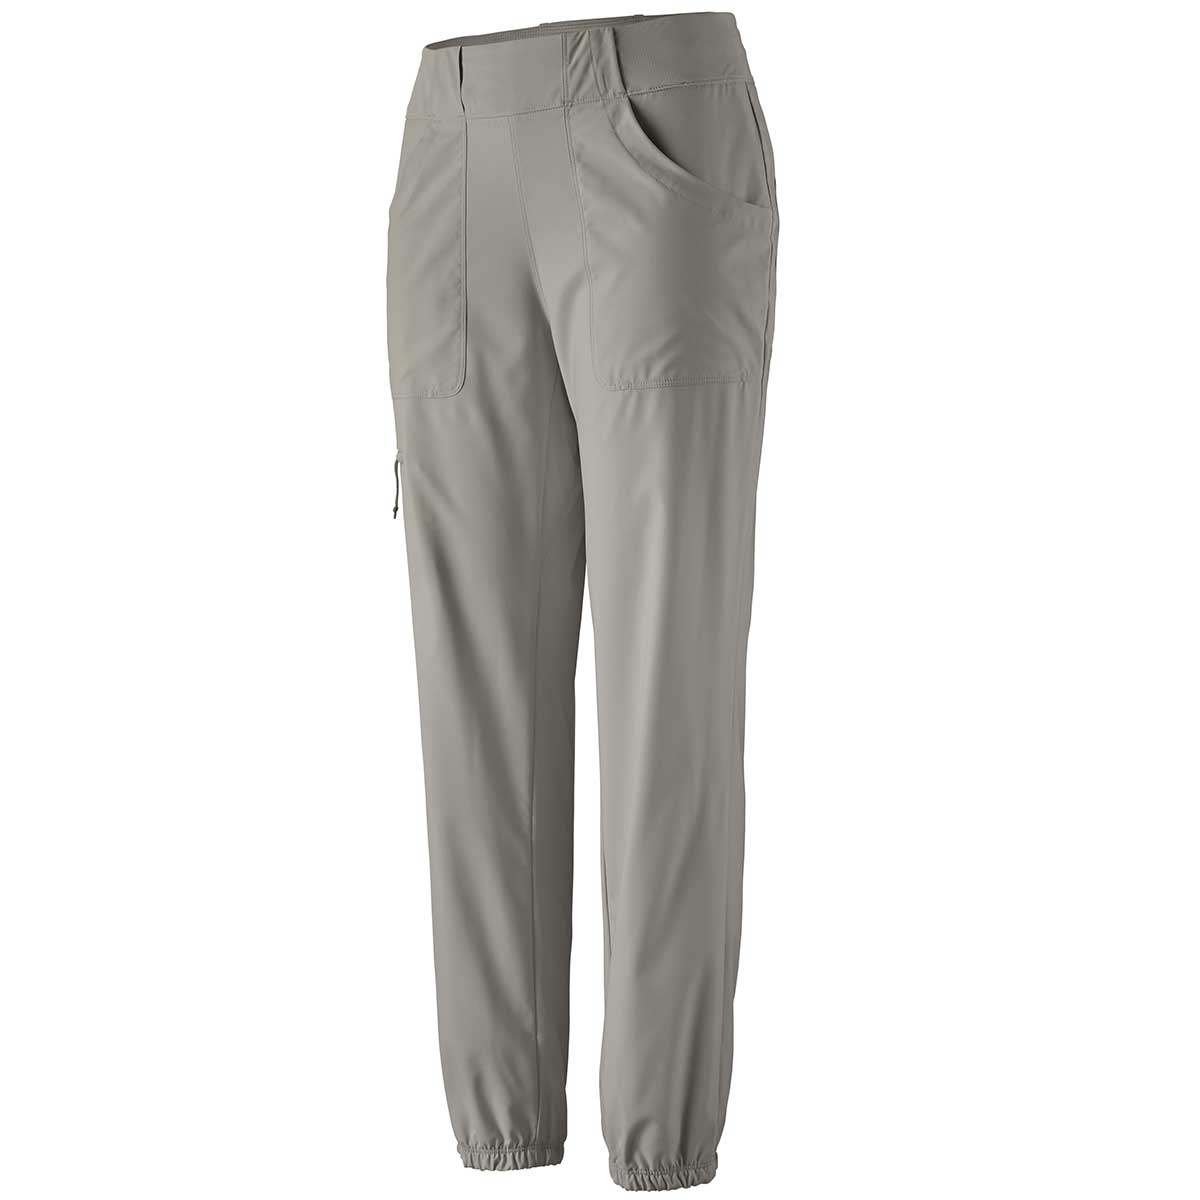 Patagonia women's Tech Jogger Pant in Drifter Grey main view